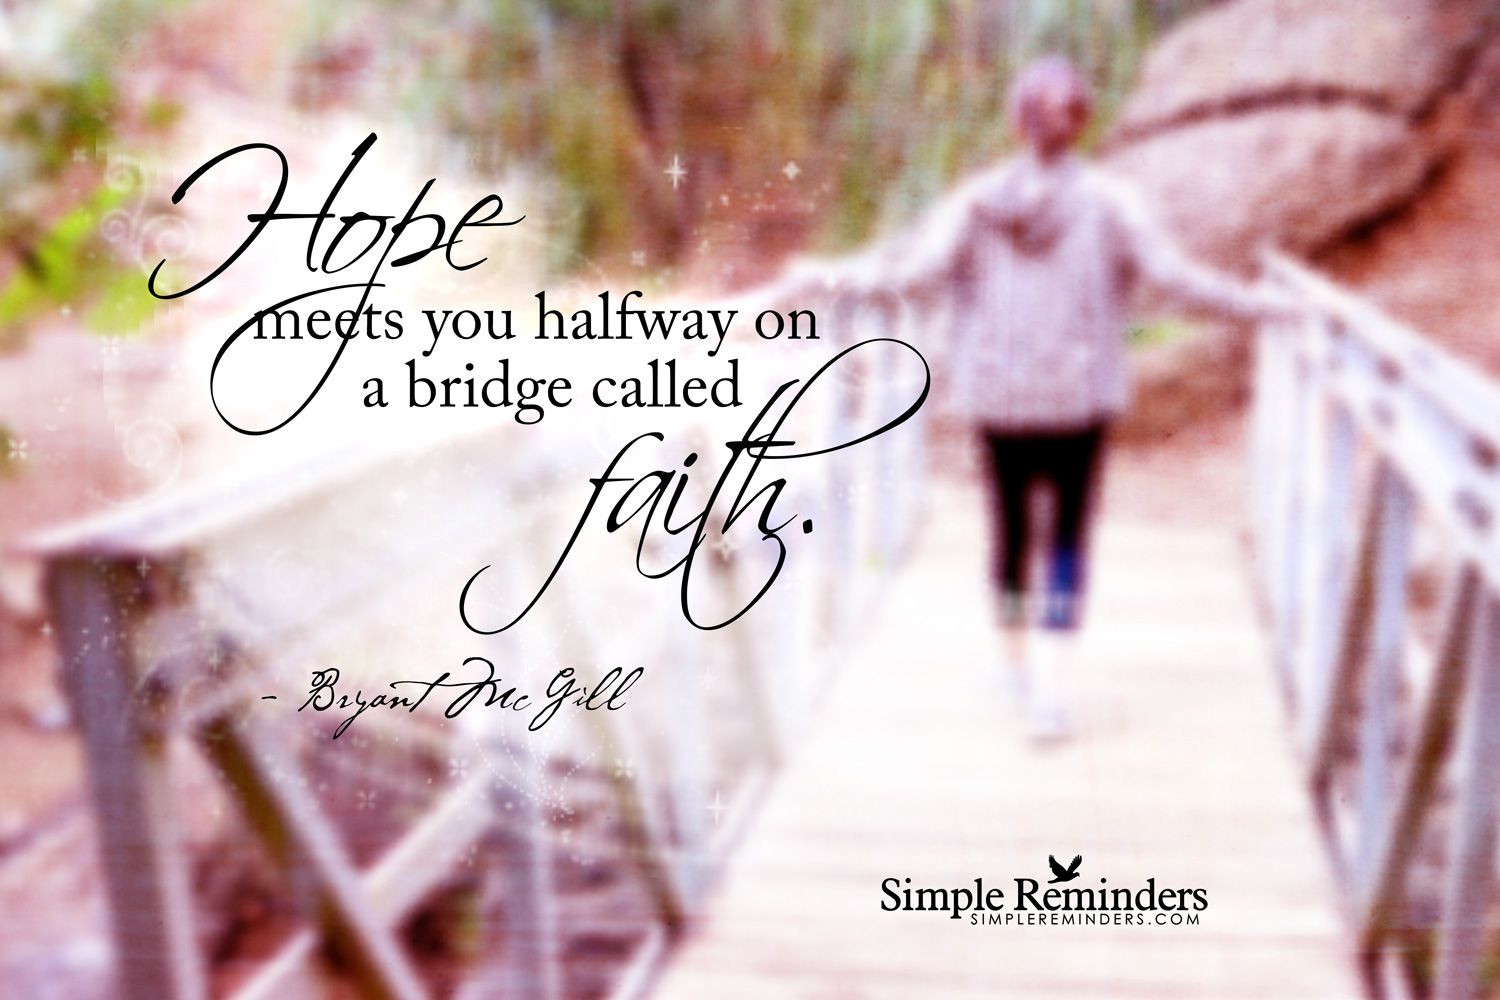 Faith.....   Simple reminders, I love the lord, Bryant mcgill